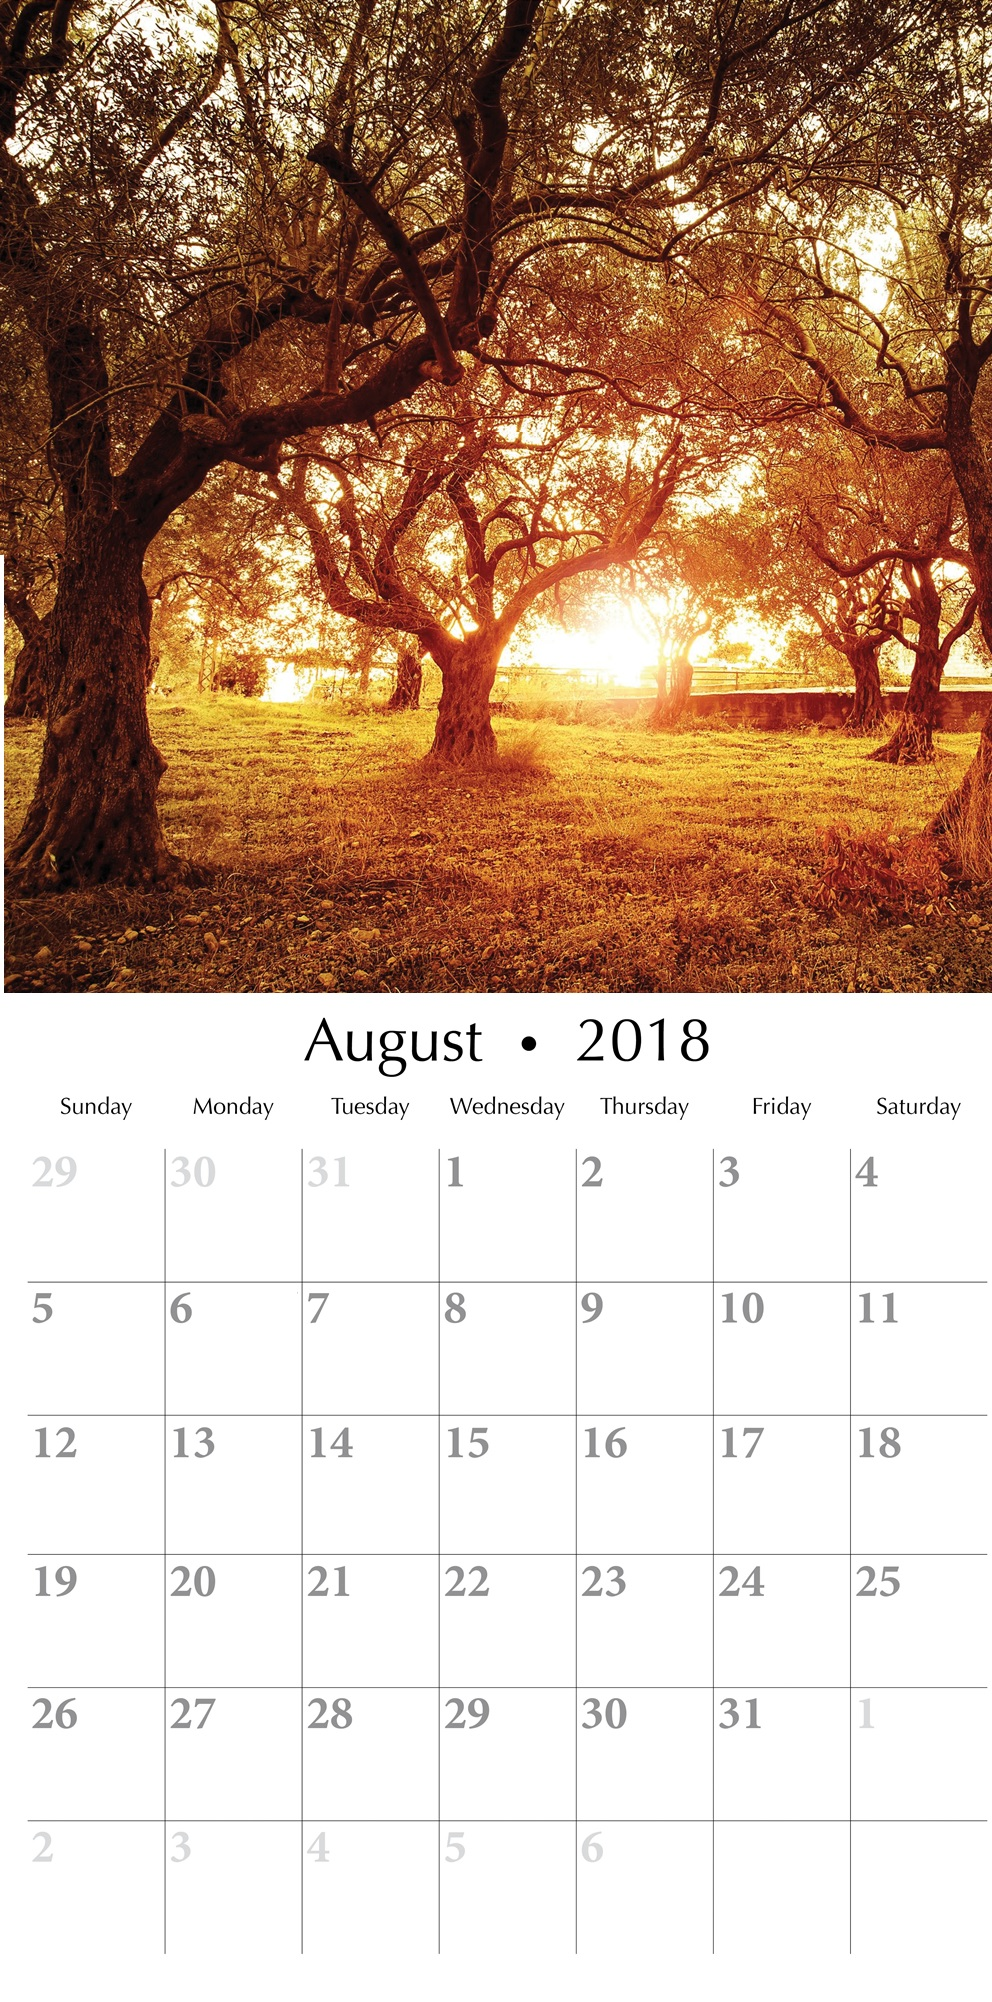 August 2018 Beauty of Tree Wall Calendar